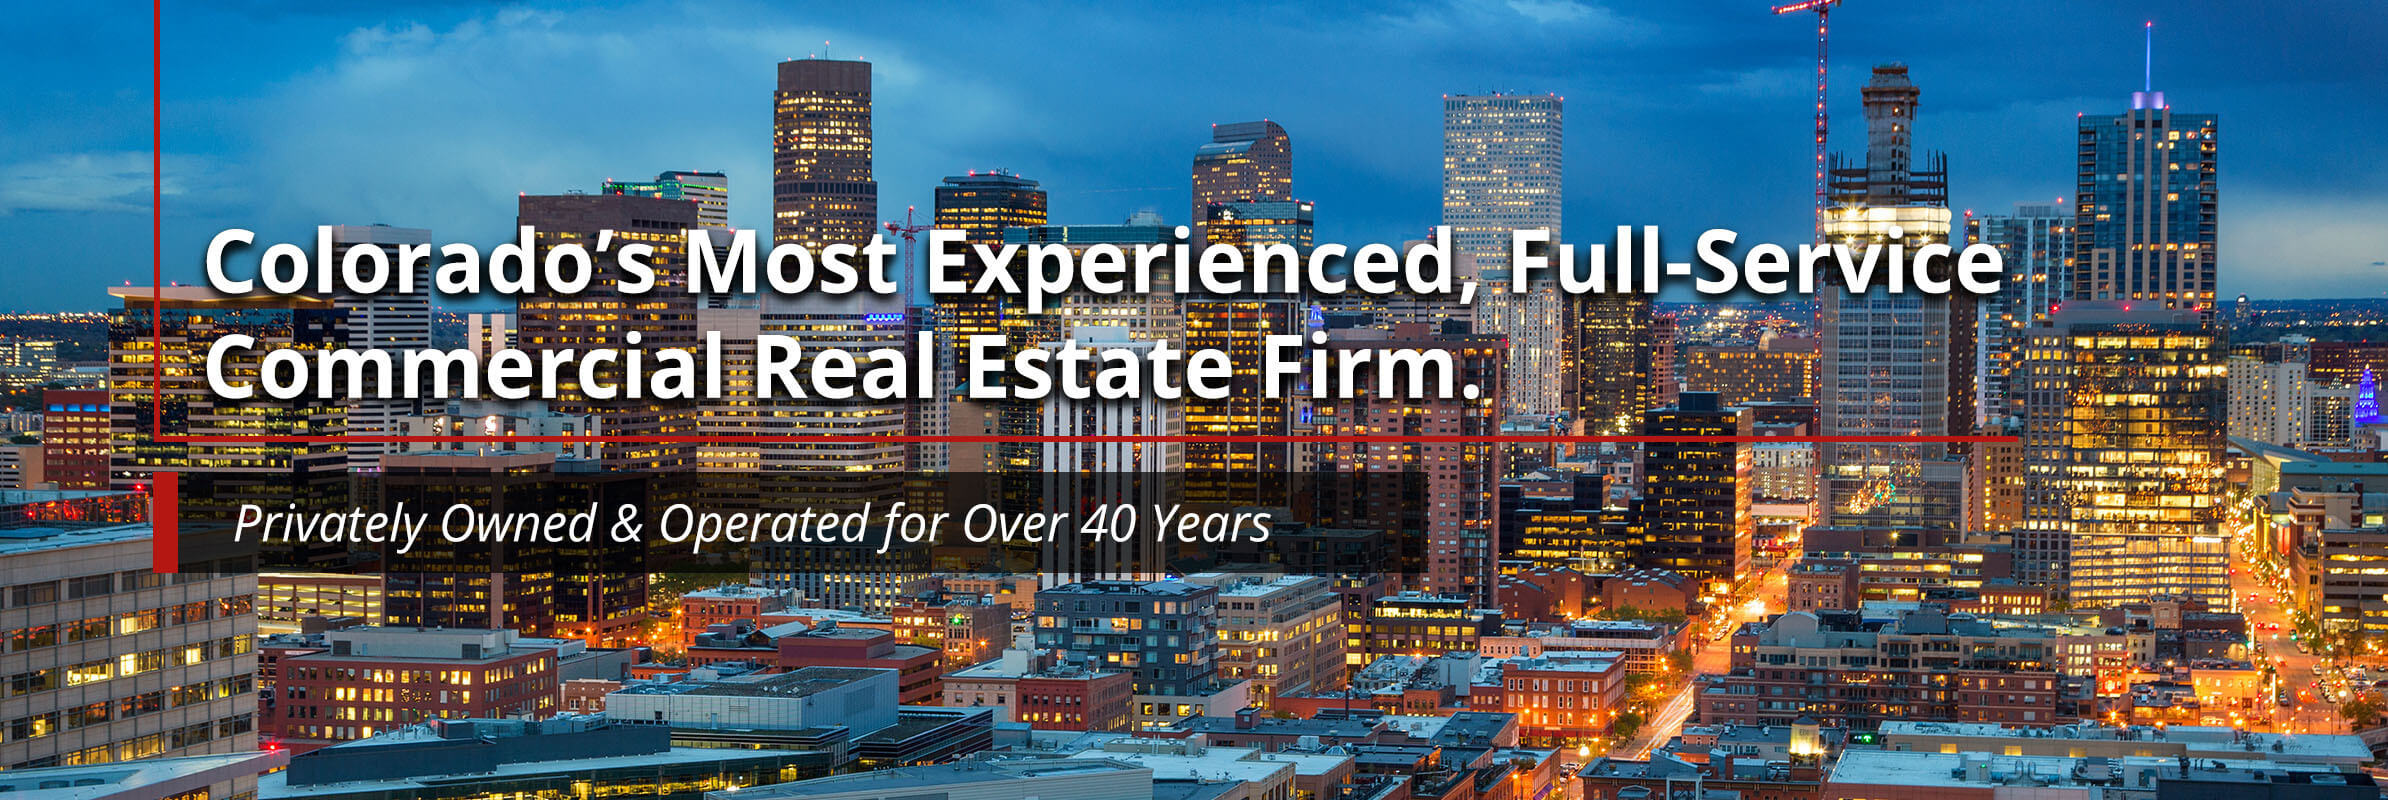 colorado-experienced-commercial-real-estate-firm